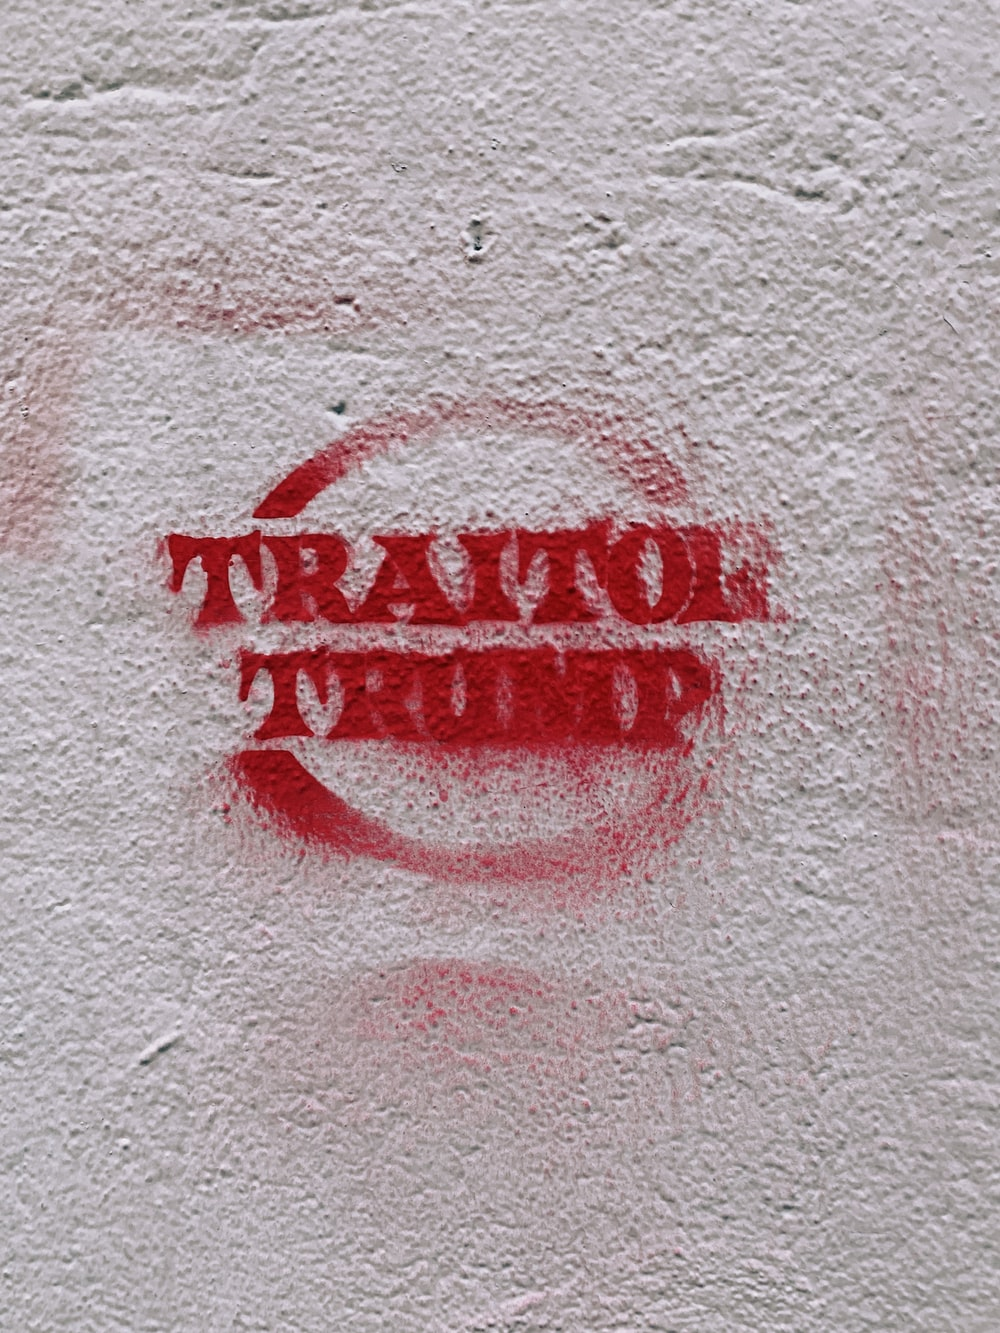 red Traitol Trump paint